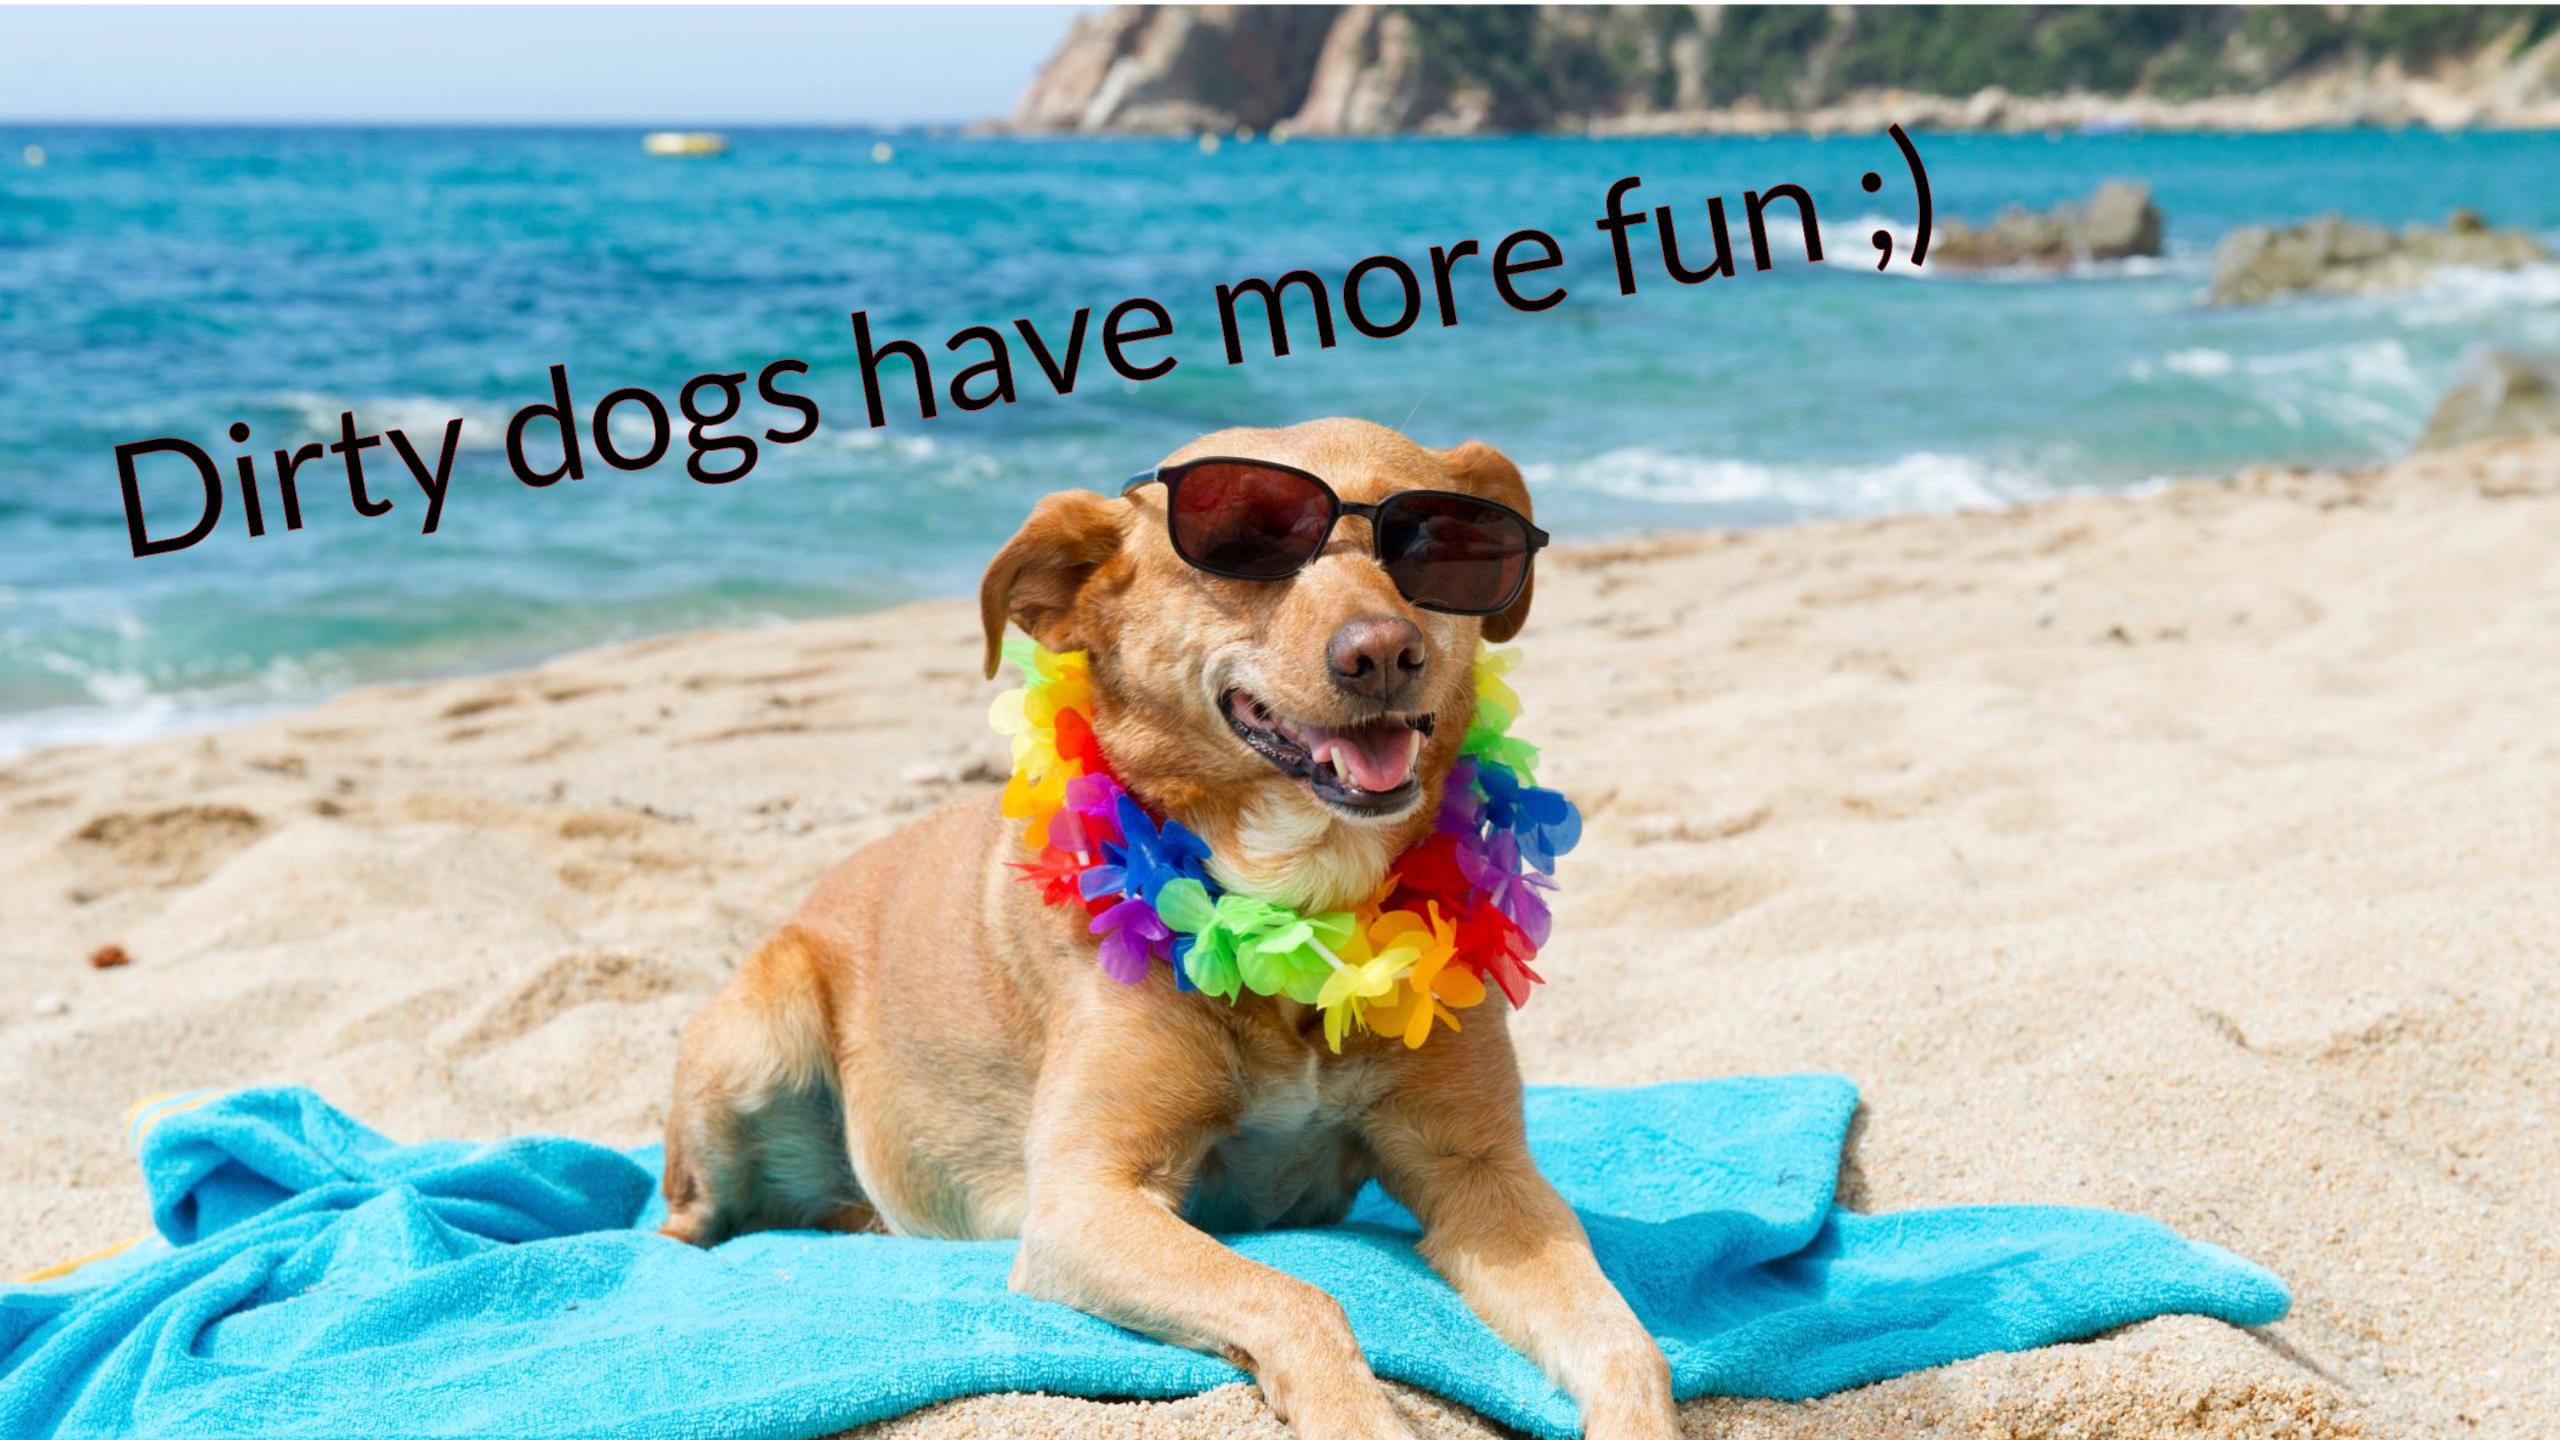 Funny Dogs Happy Dogs Stylish Dogs Funny Dog Names